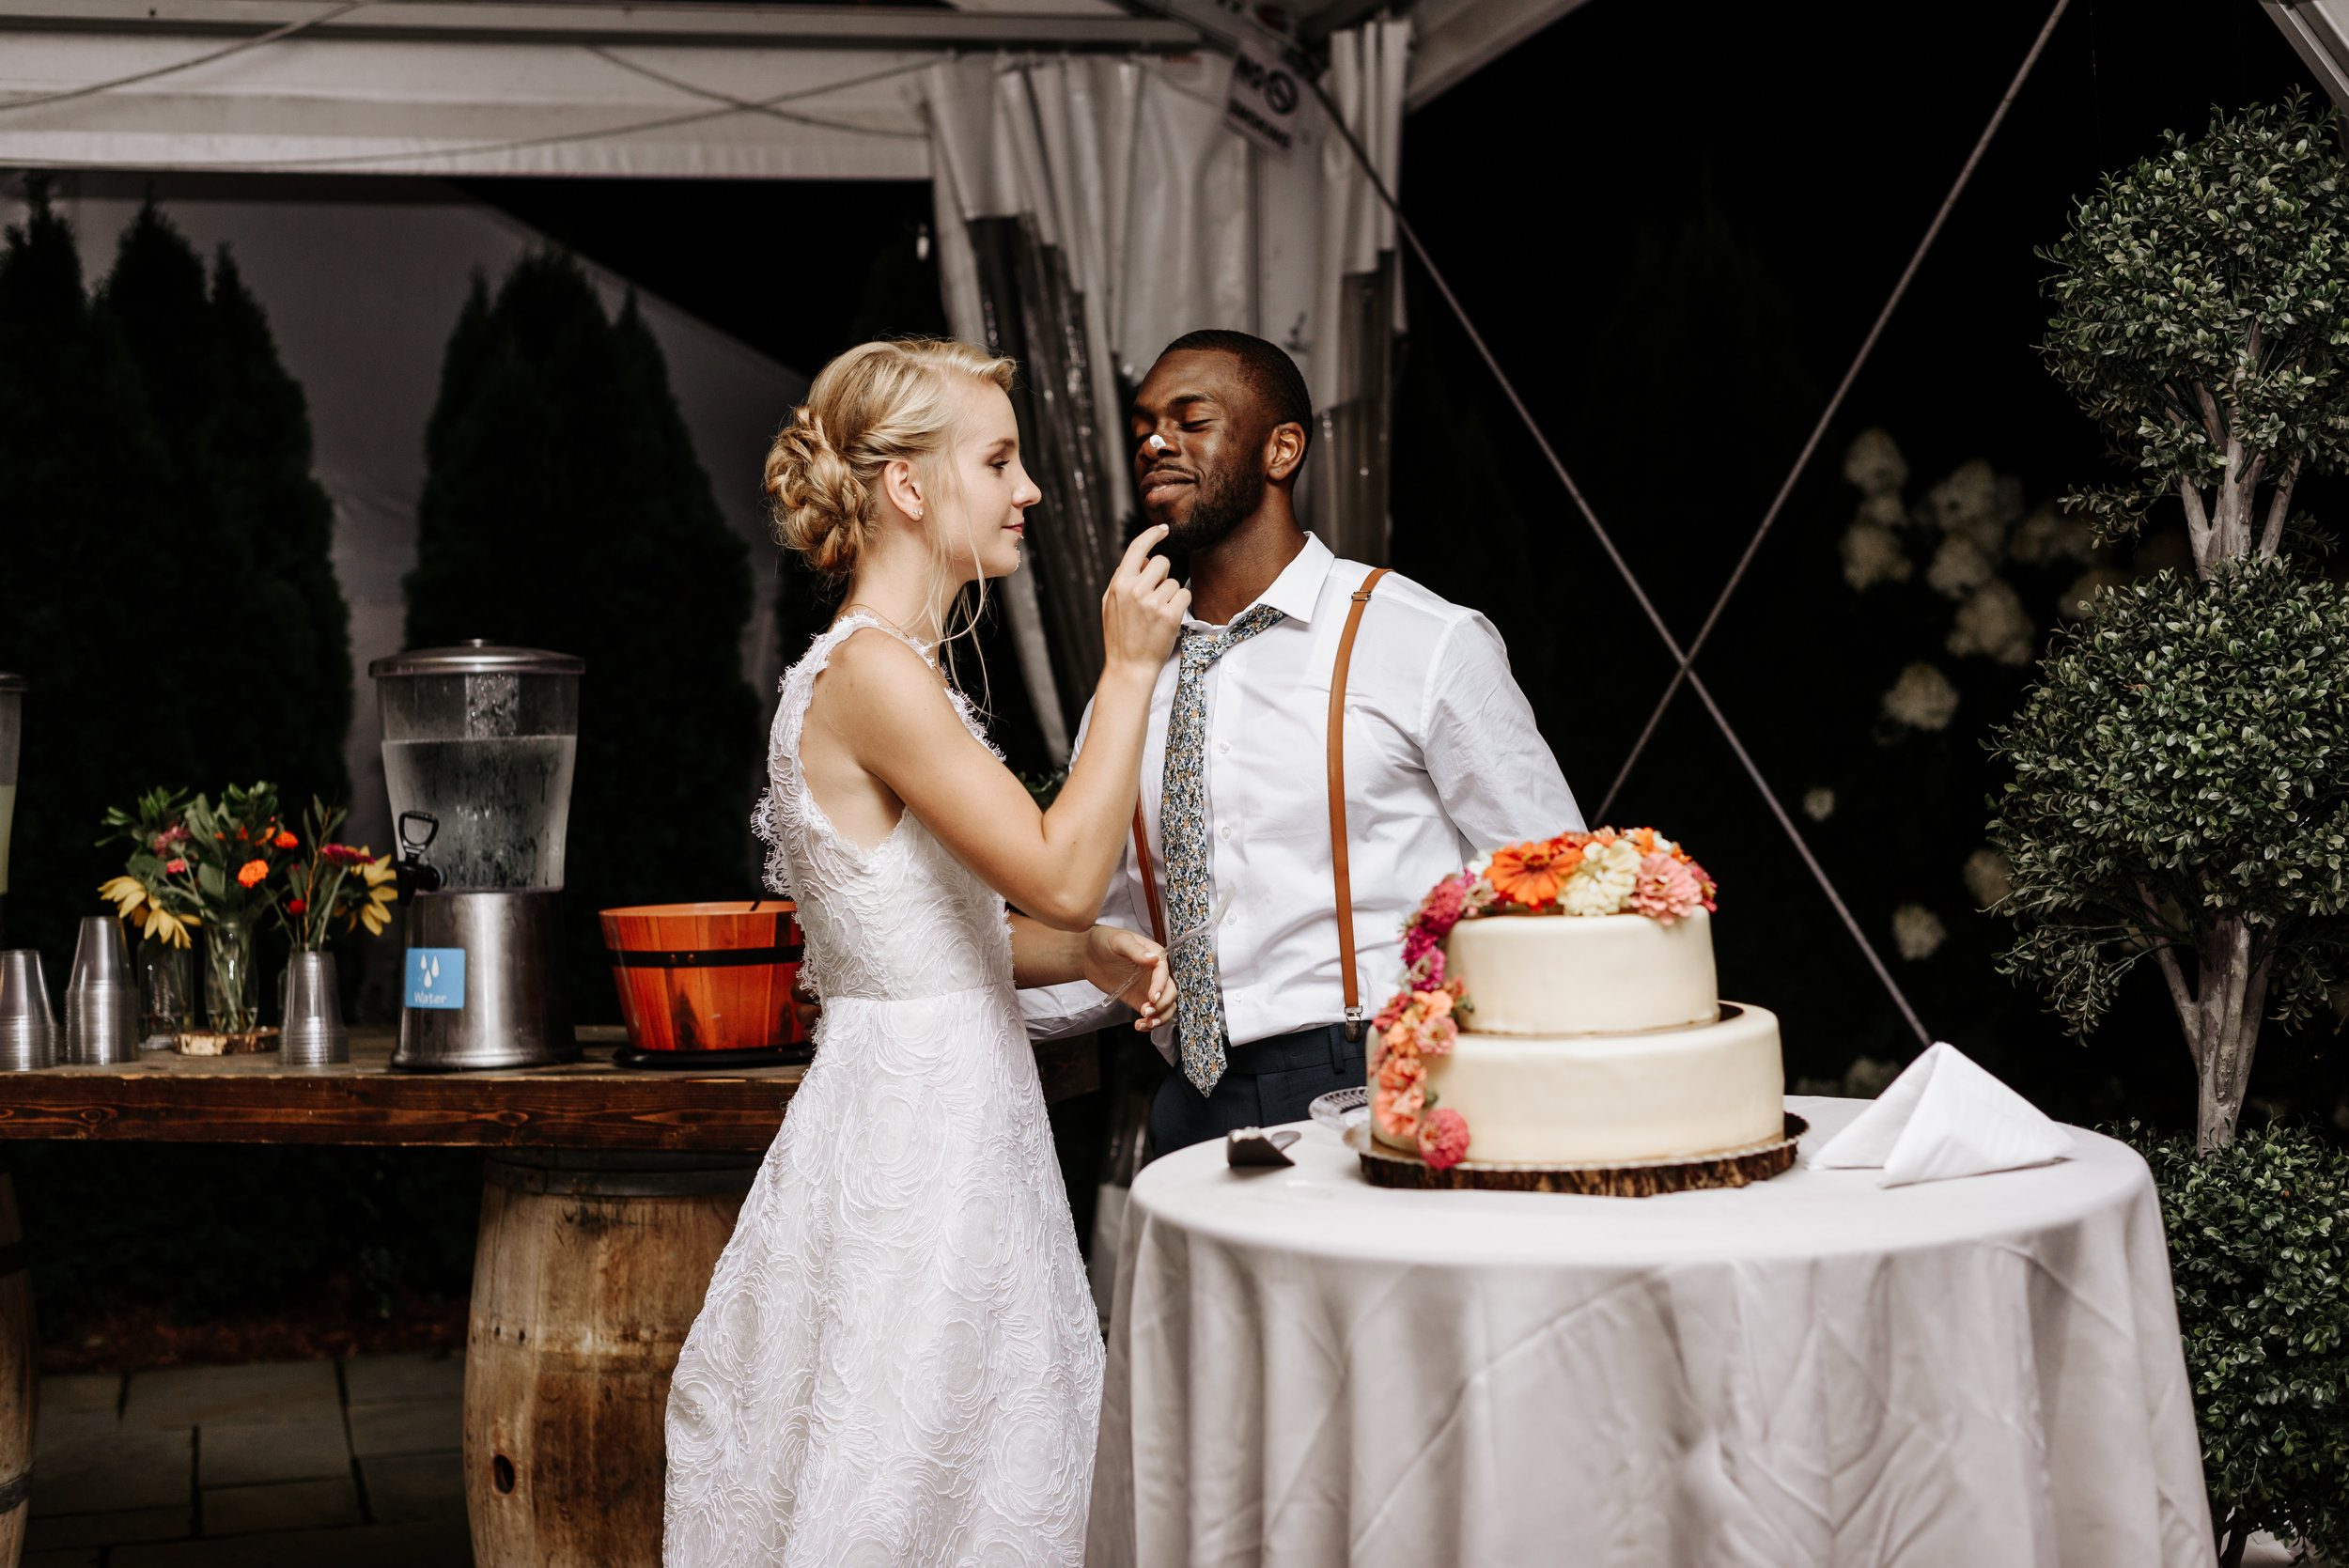 Lauren-Trell-Wedding-Market-at-Grelen-Virginia-Photography-by-V-6967.jpg